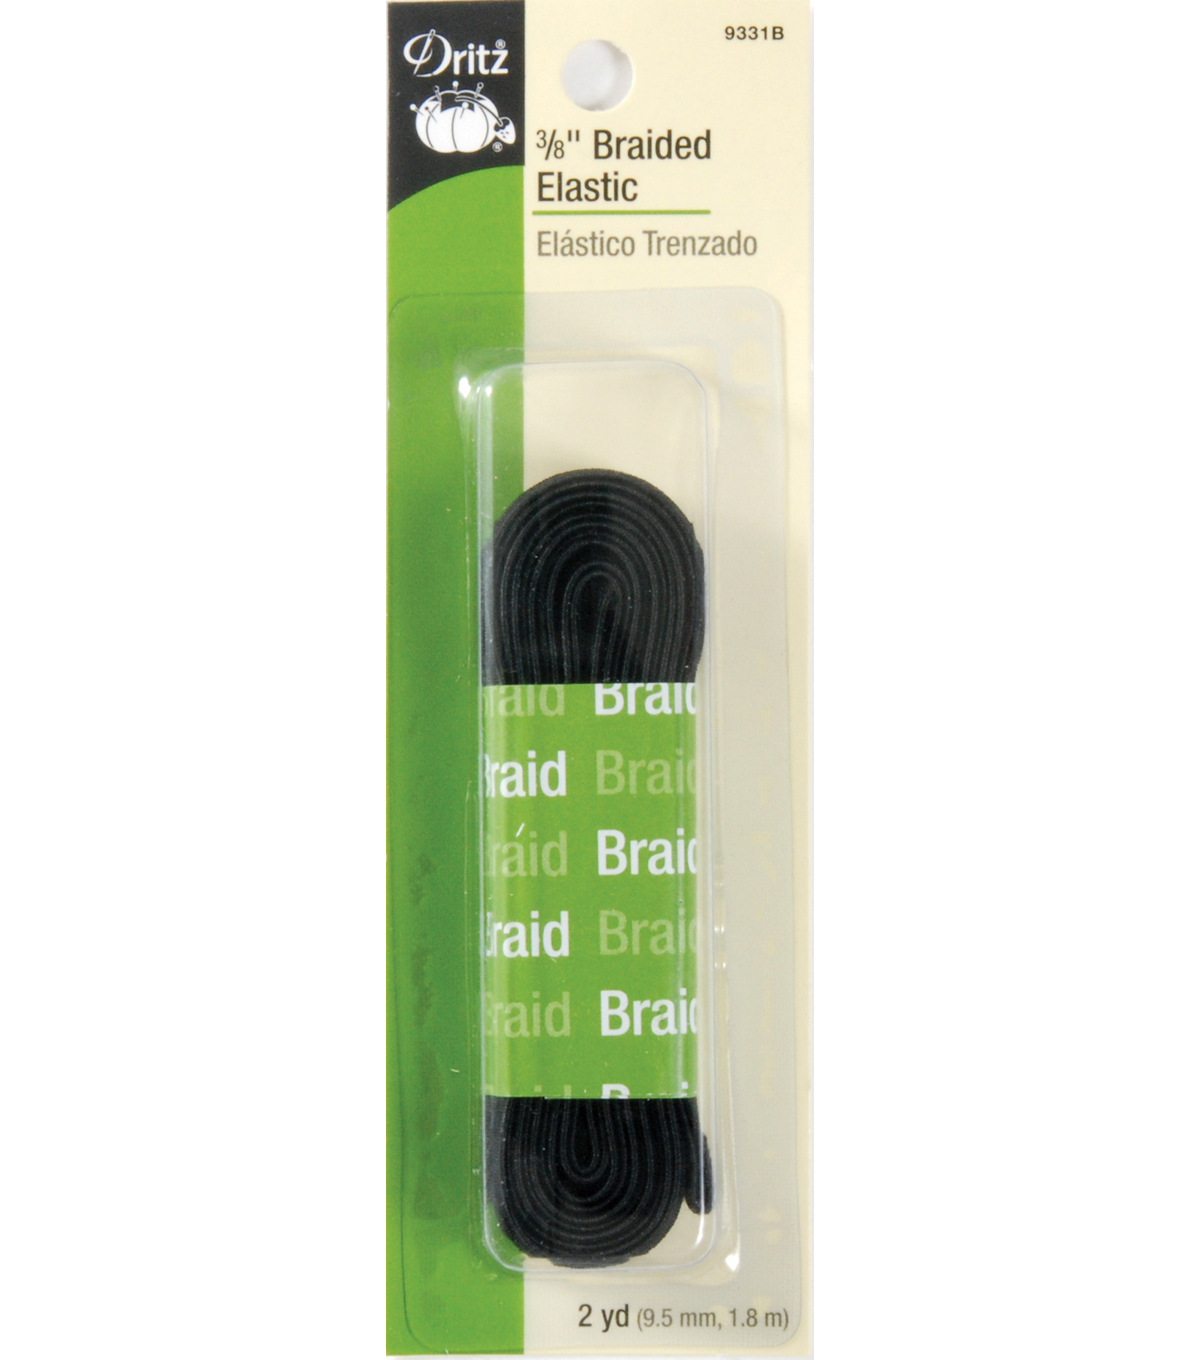 Dritz Braided Elastic 0.38\u0027\u0027 Wide x 2Yds